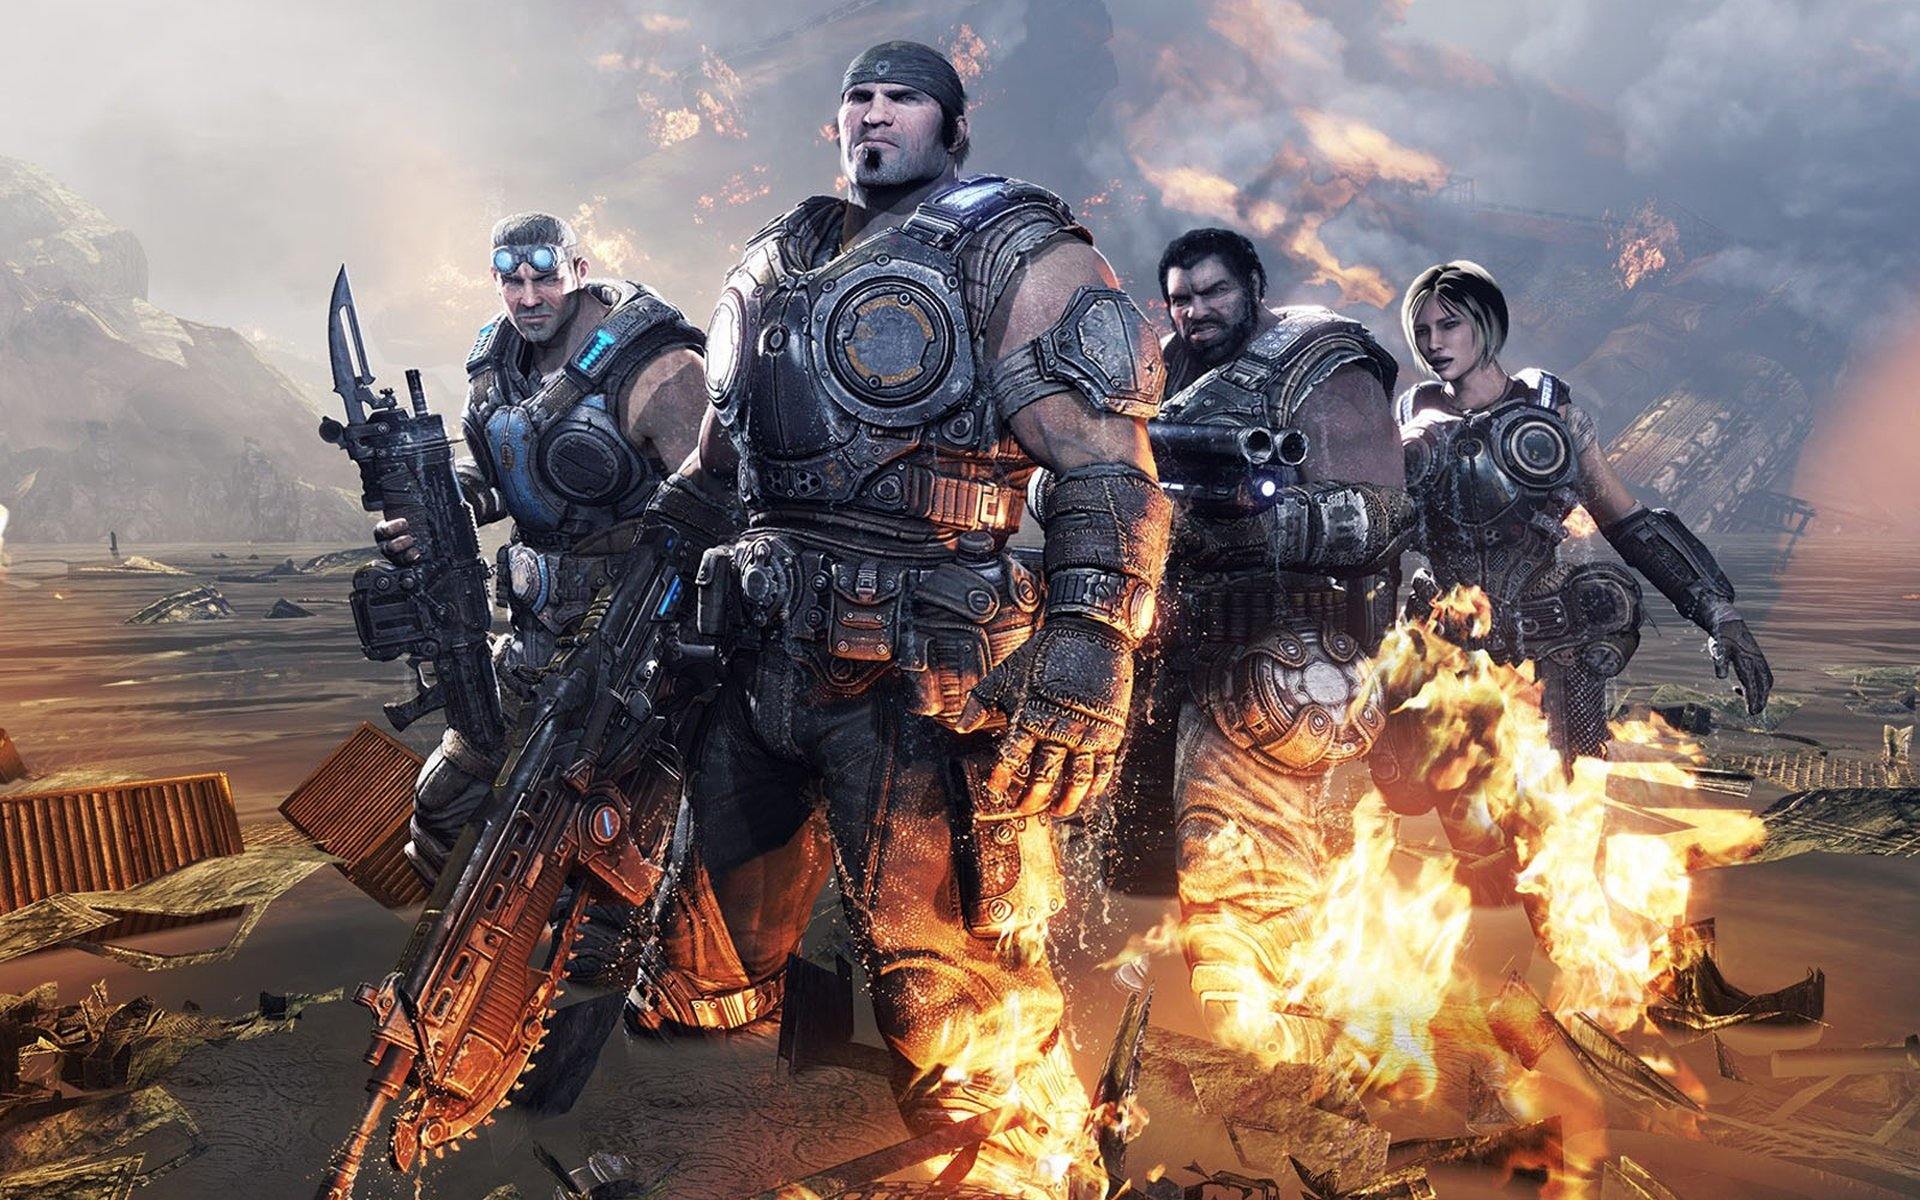 Gears Of War 3 Full HD Fondo De Pantalla And Fondo De